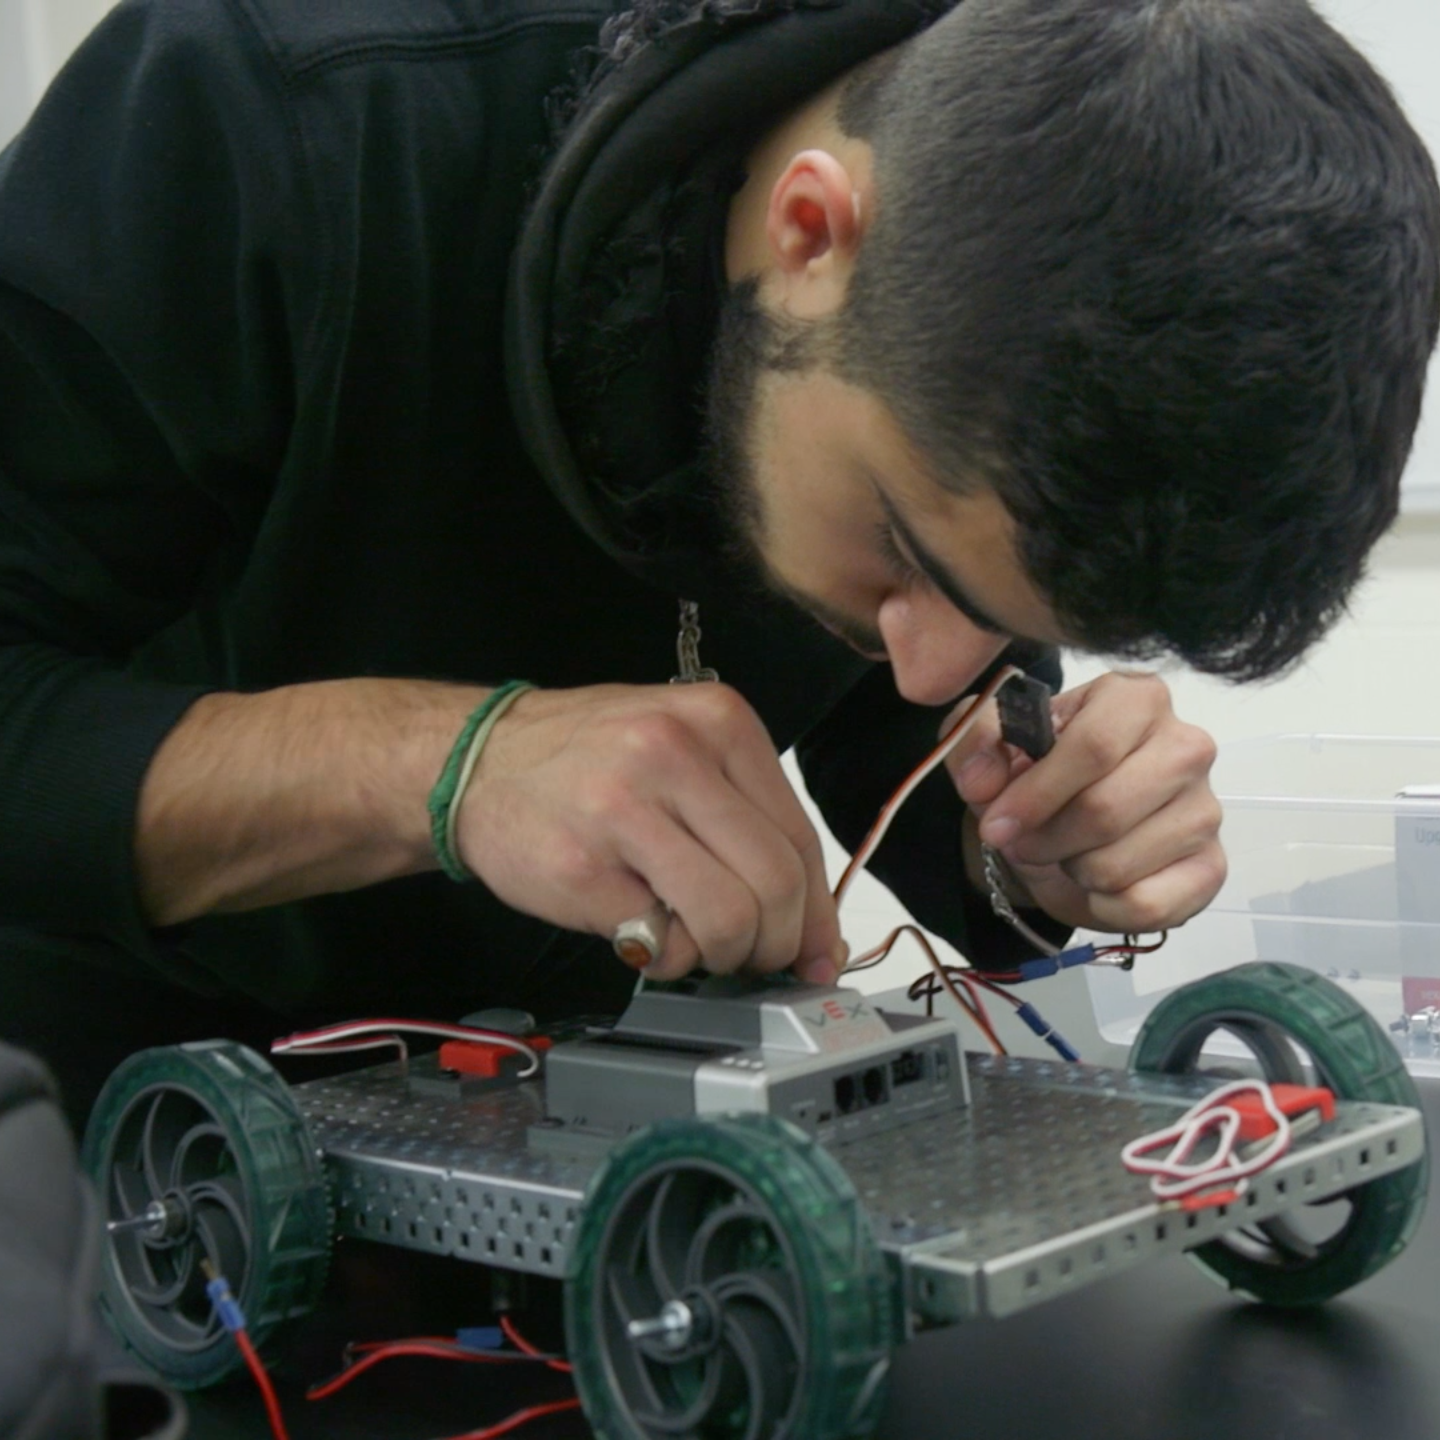 Student leaning over a robotic vehicle, arranging wires